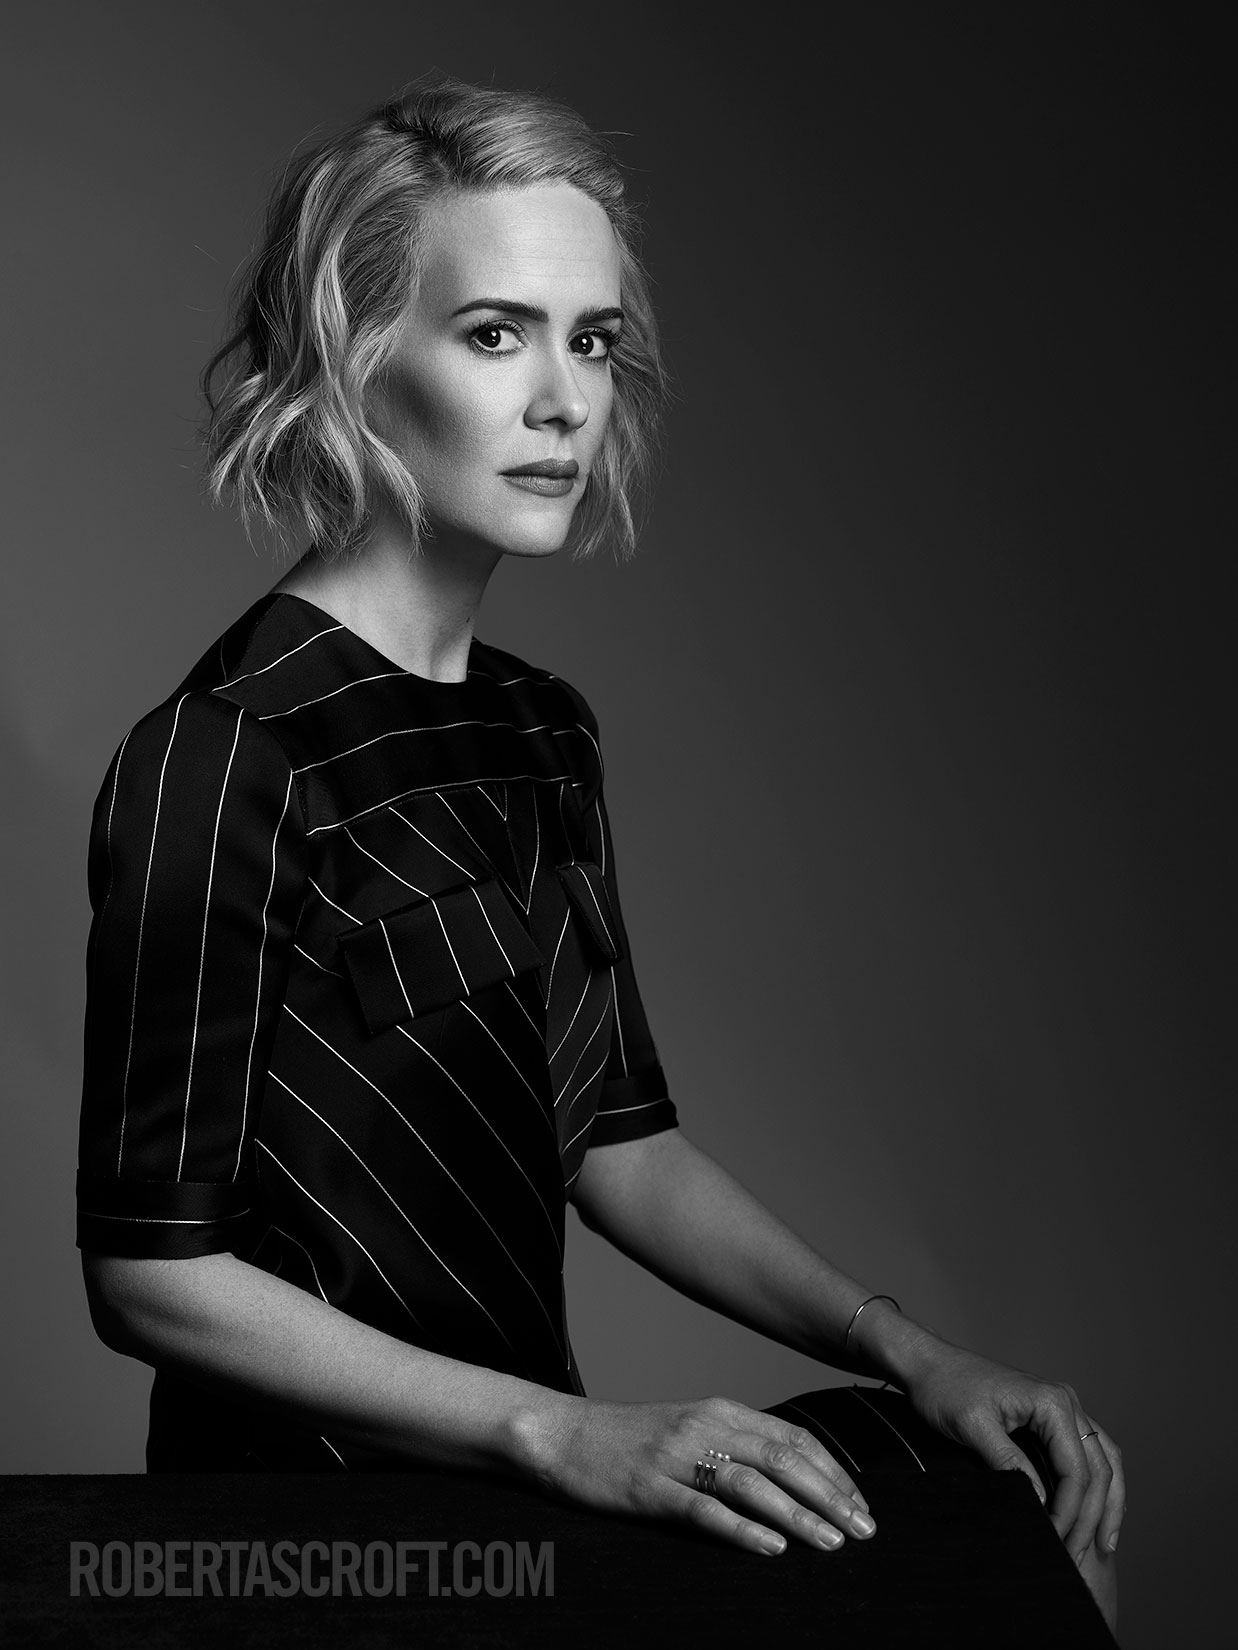 Sarah-Paulson-by-Robert-Ascroft-2